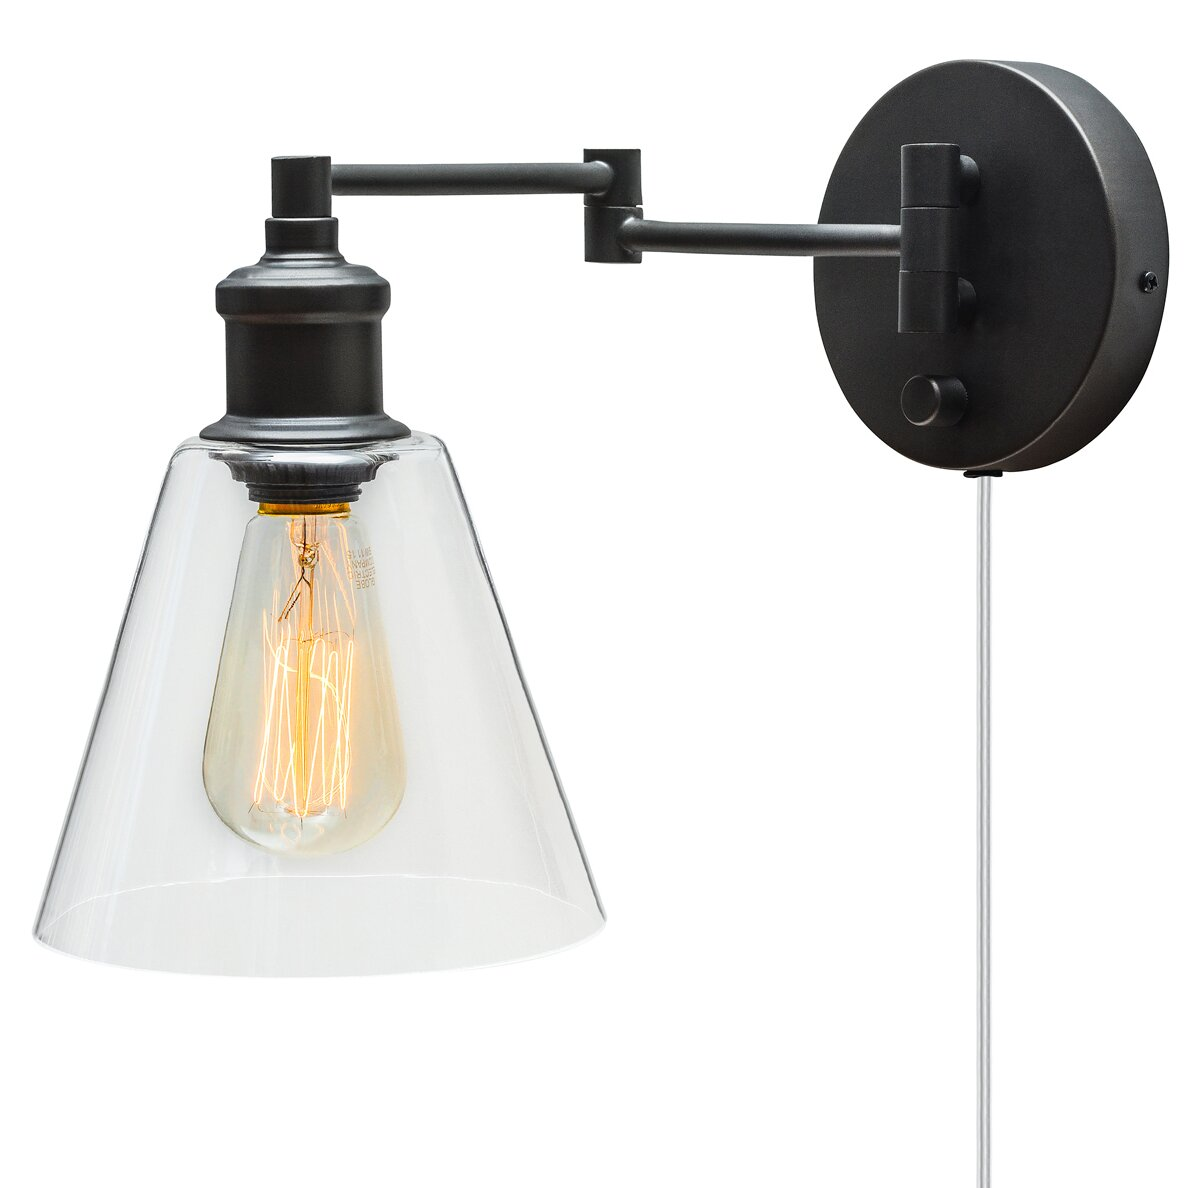 globe electric company adison 1 light plug in industrial wall sconce with hardwire conversion. Black Bedroom Furniture Sets. Home Design Ideas